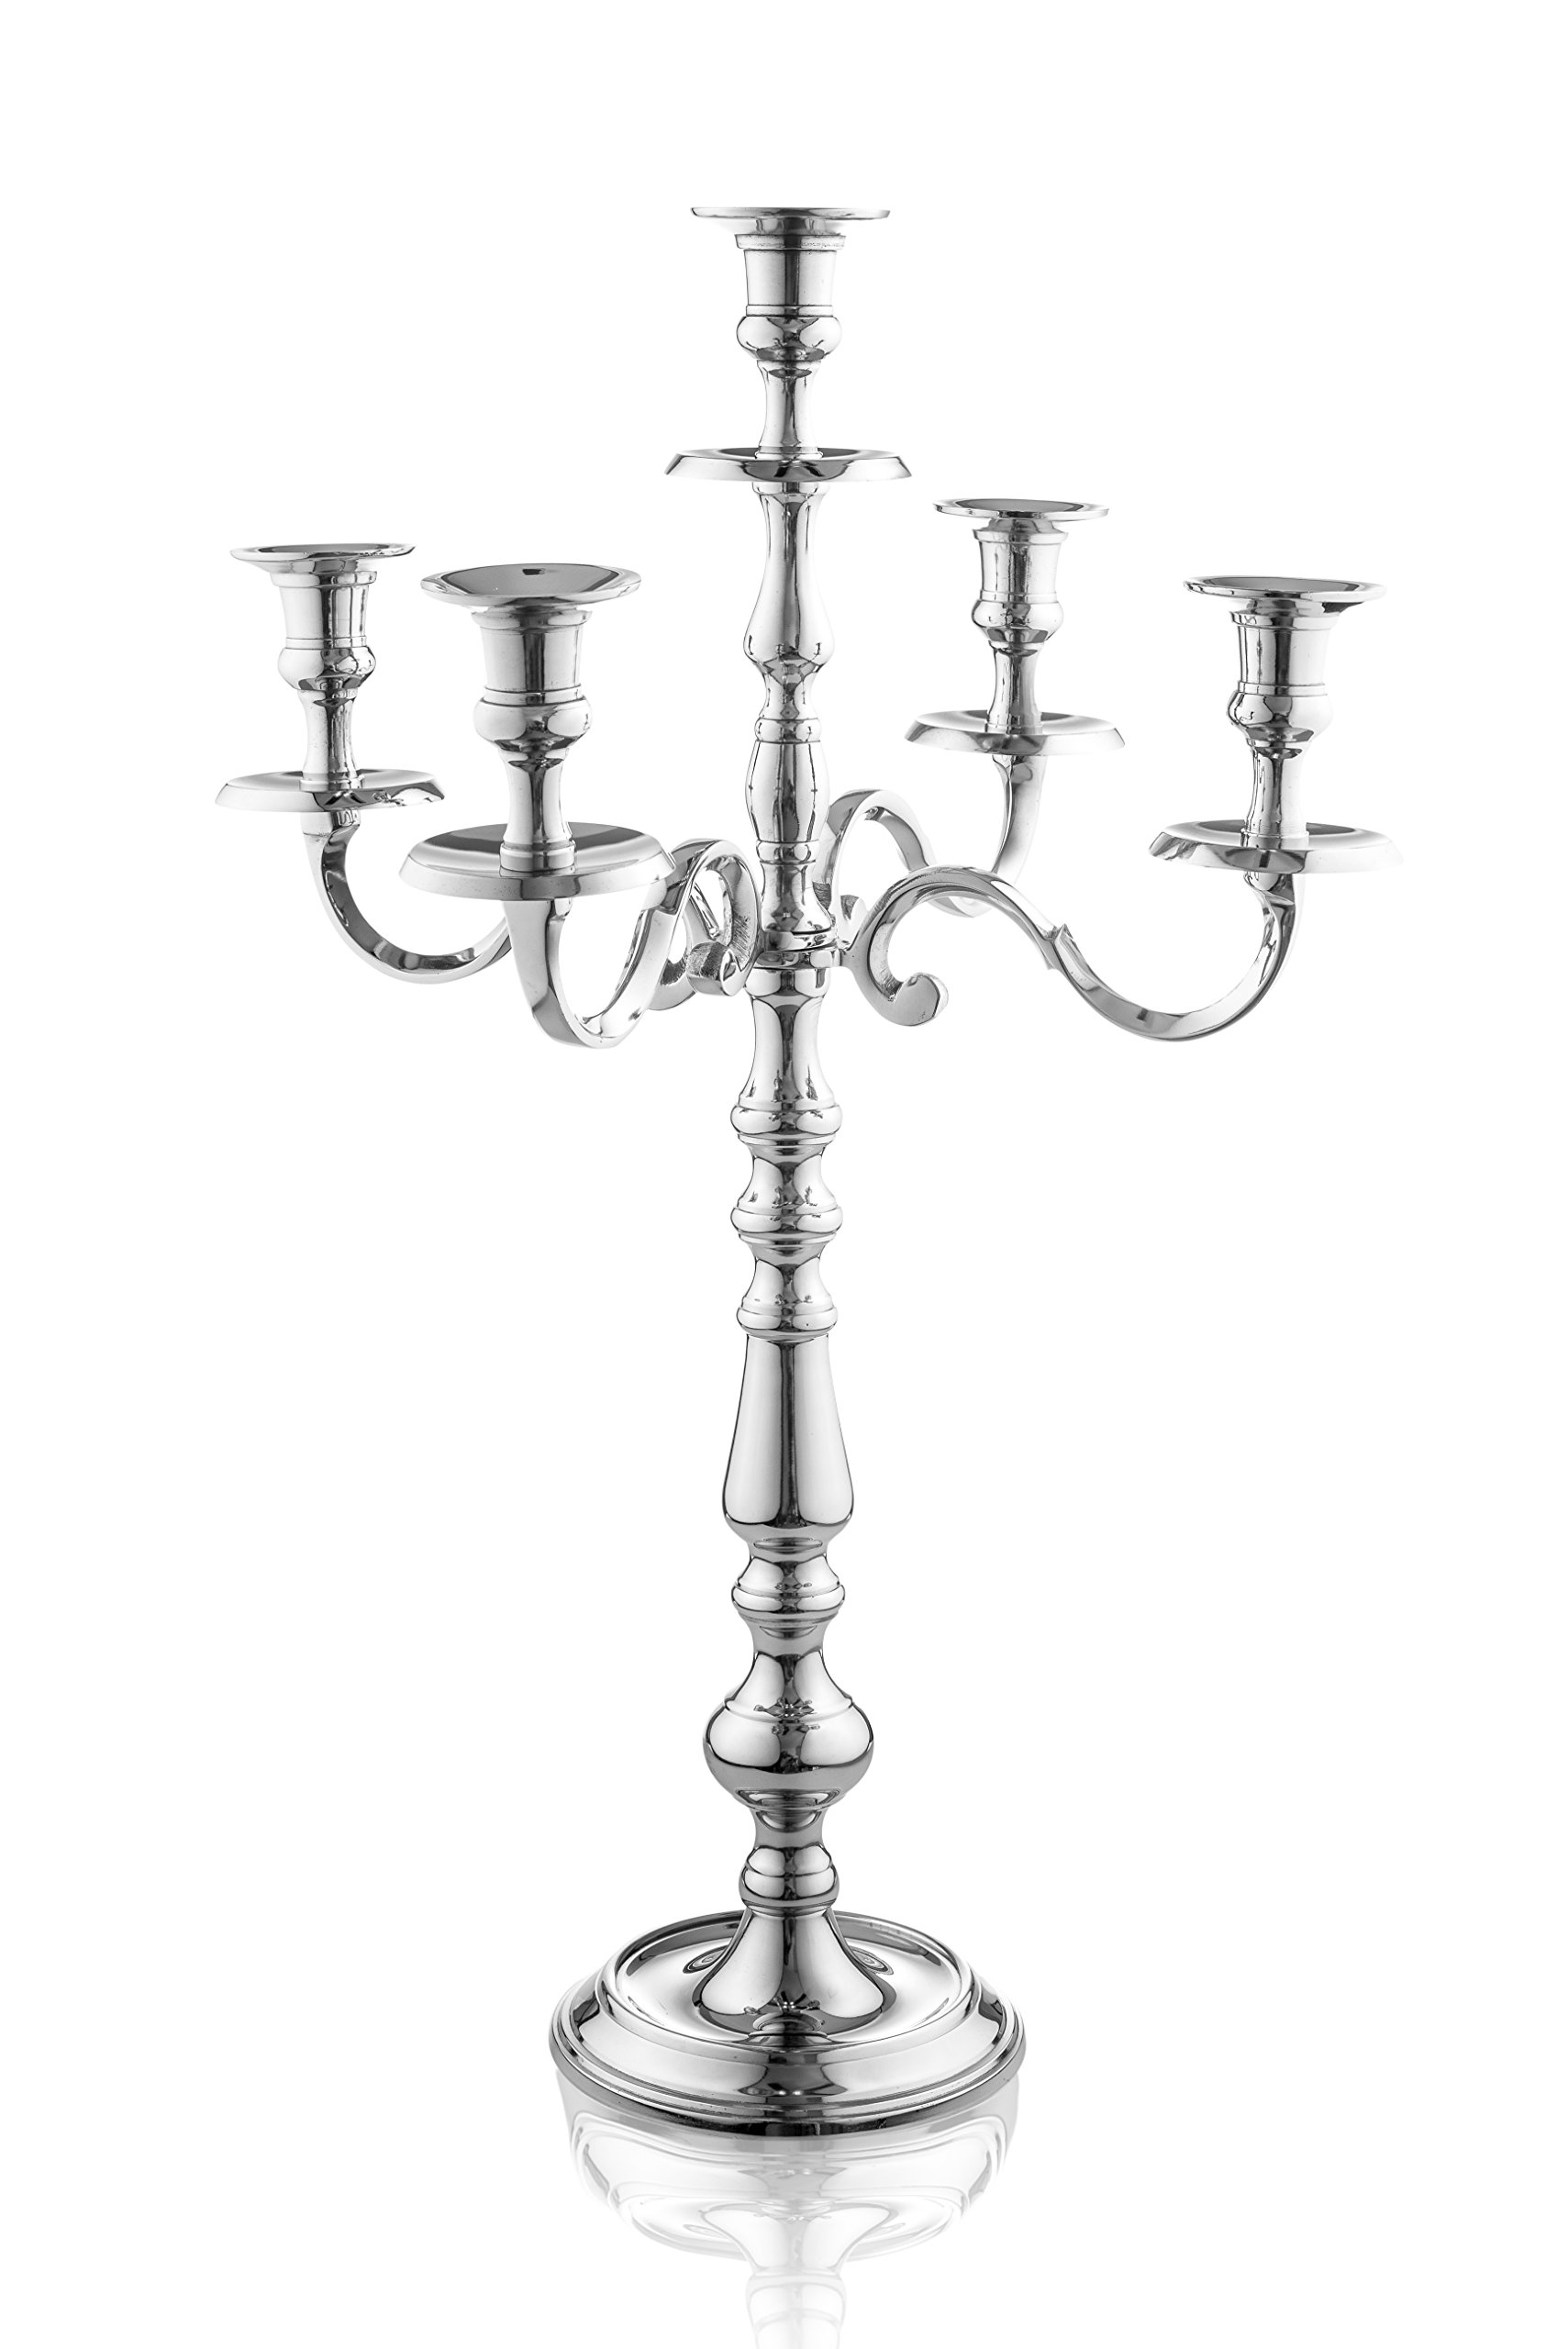 Klikel Traditional 24 Inch Silver 5 Candle Candelabra - Classic Elegant Design - Wedding, Dinner Party And Formal Event Centerpiece - Nickel Plated Aluminum, Mirrored Finish